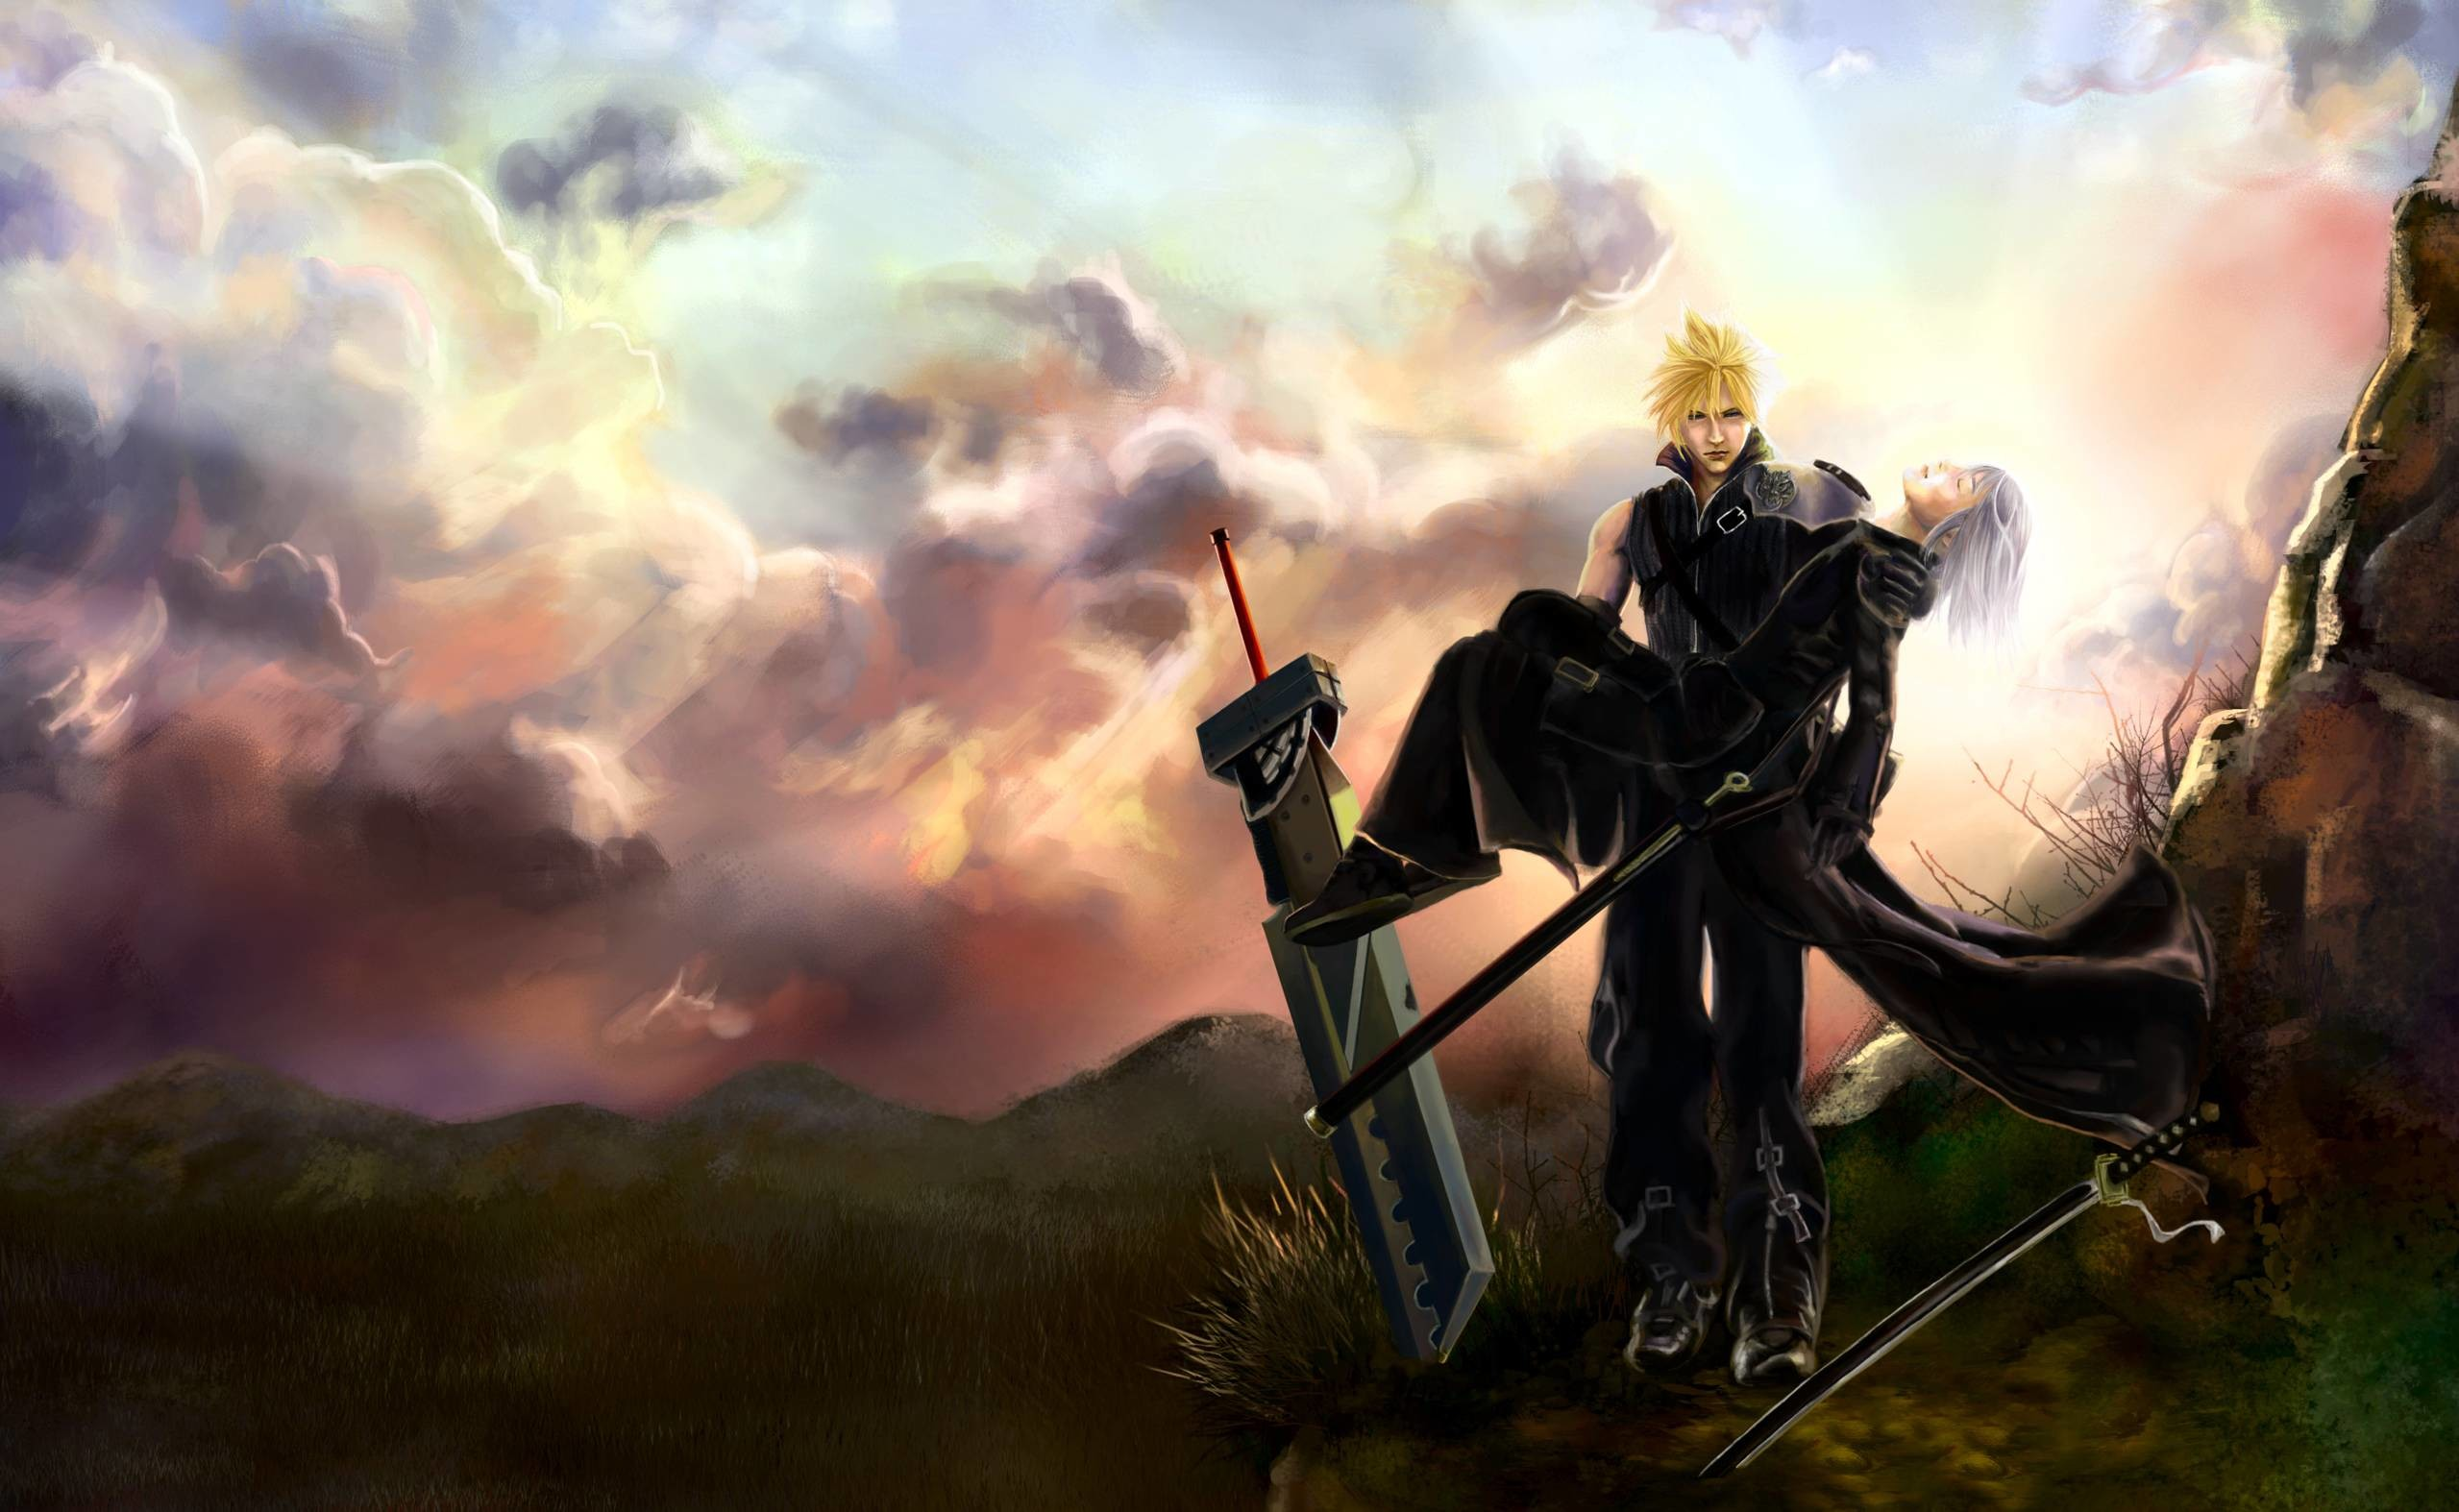 491 Final Fantasy Wallpapers | Final Fantasy Backgrounds Page 5